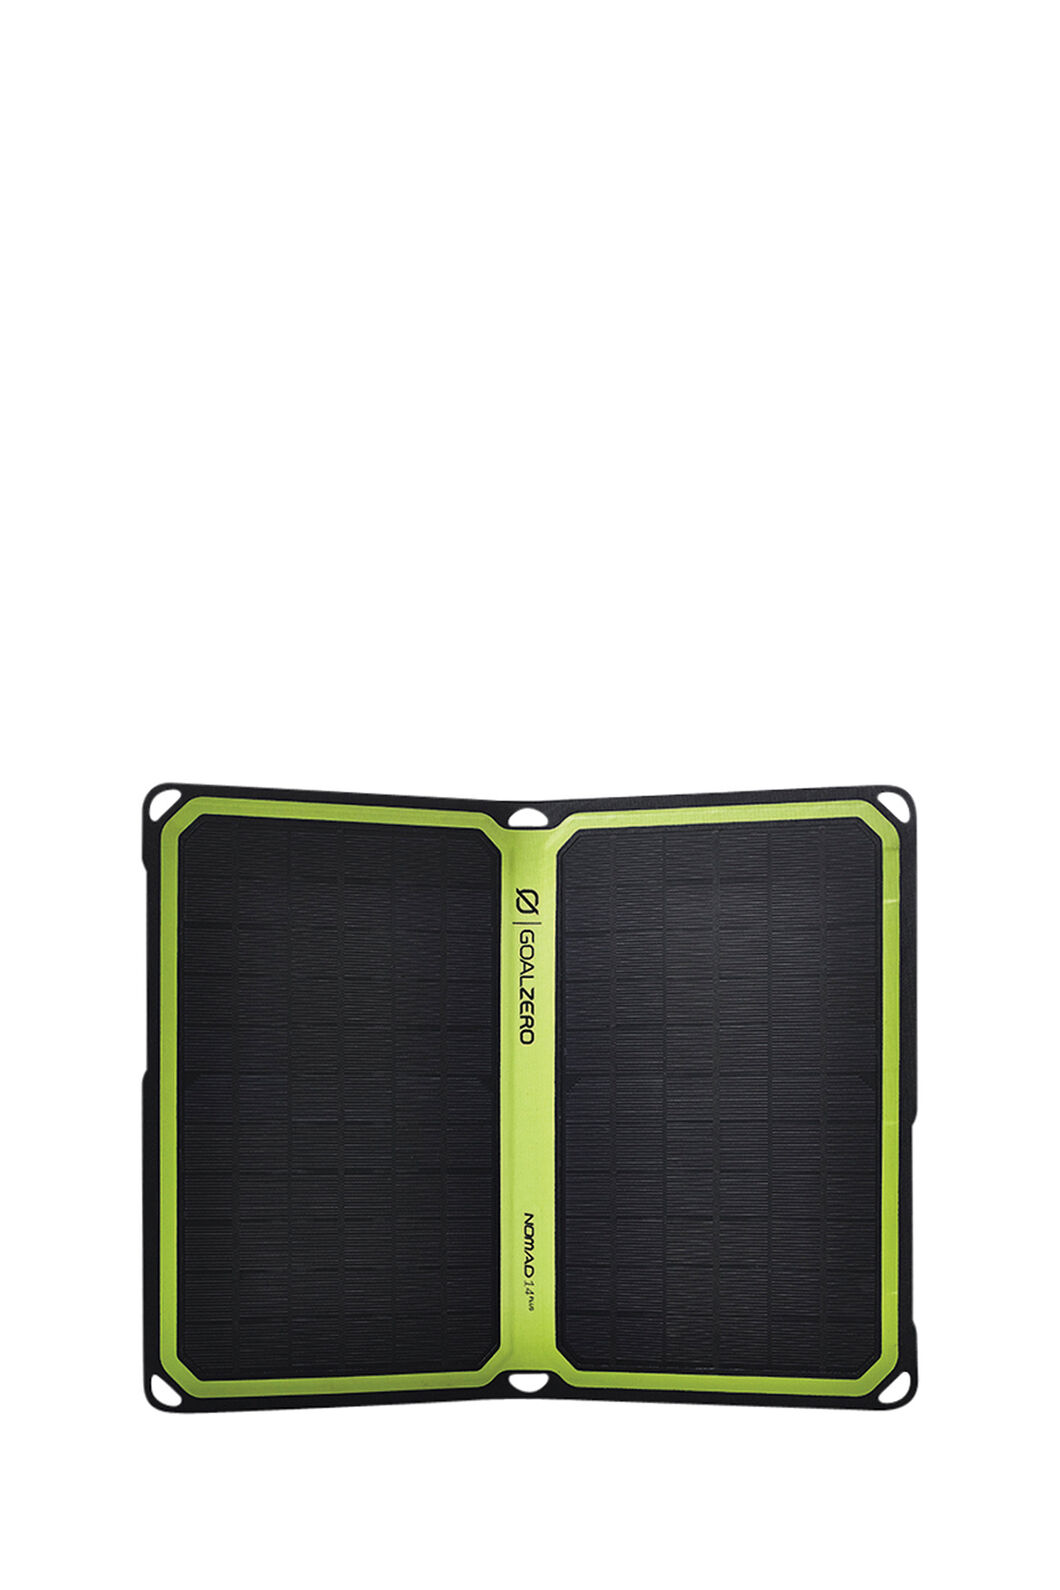 Goal Zero Nomad 14 Plus Solar Panel, None, hi-res